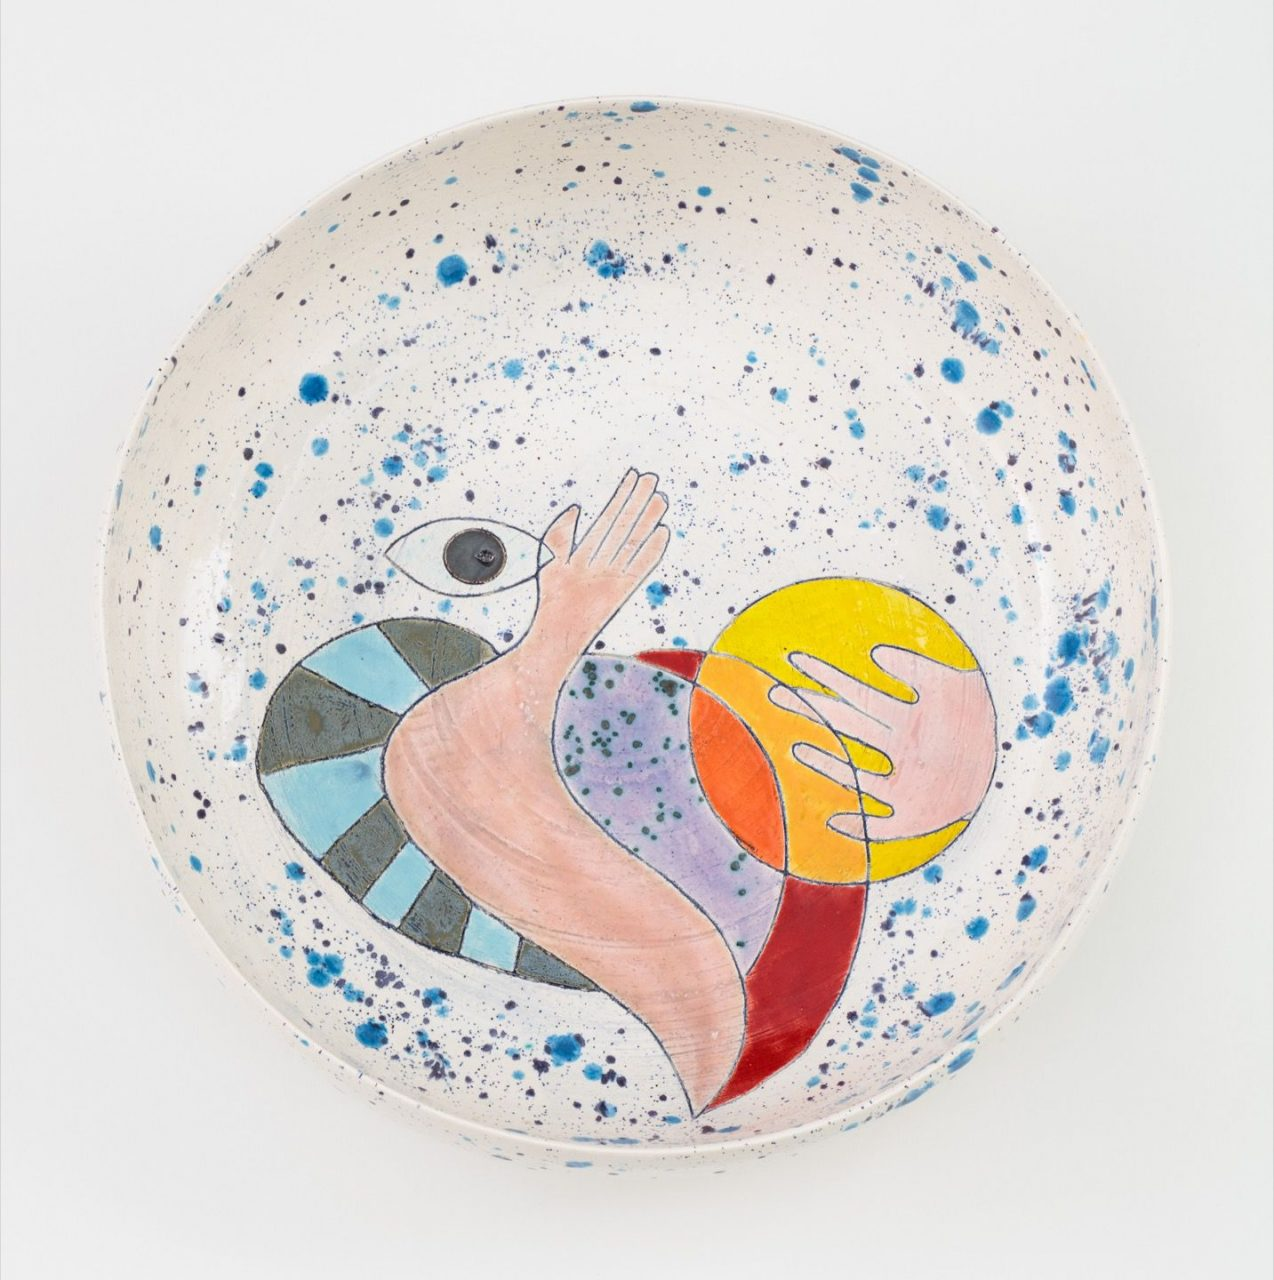 IS | Large Bowl (White), 2016